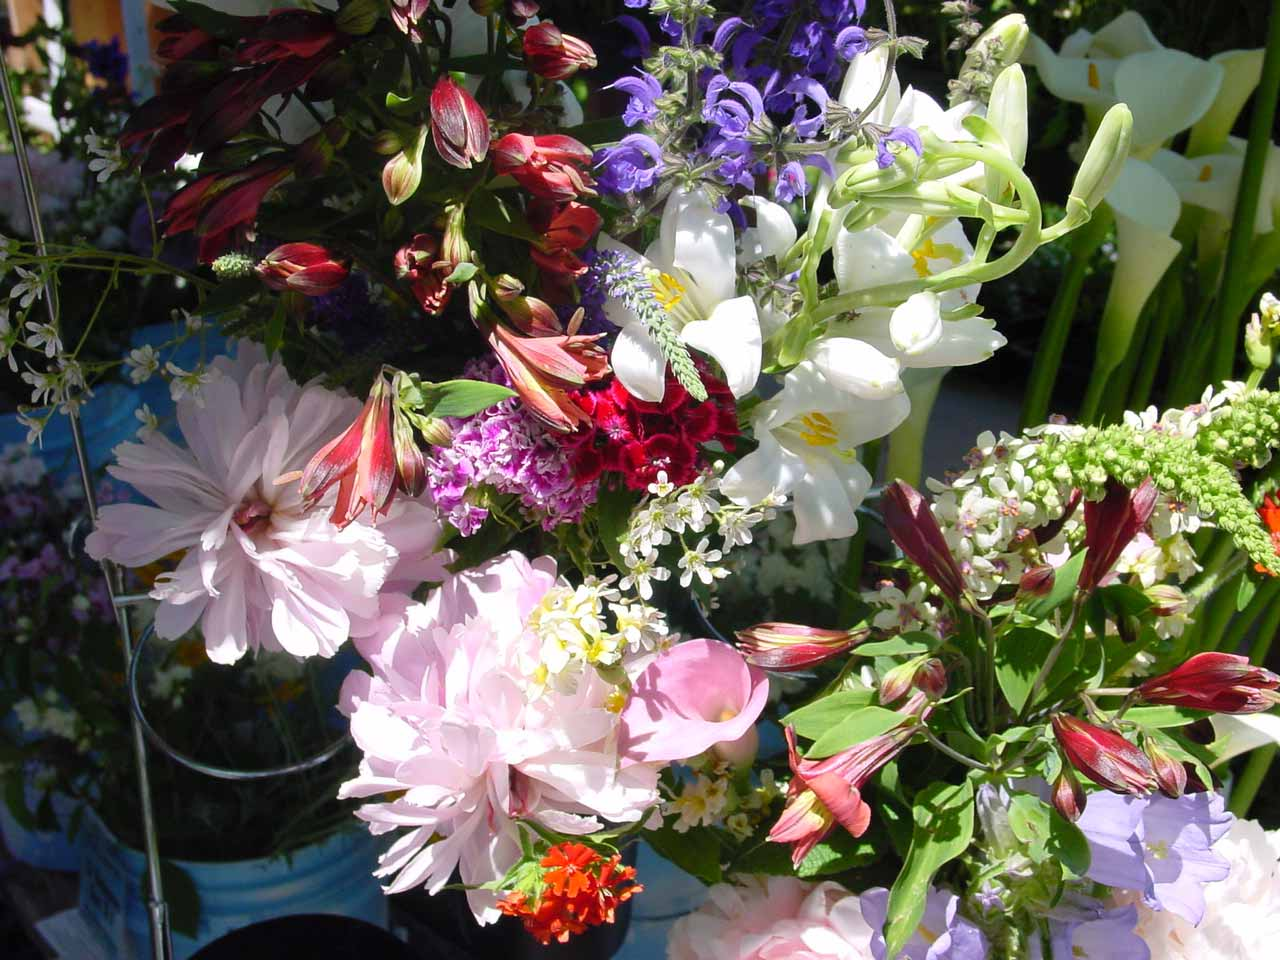 Mixed Flowers at Market